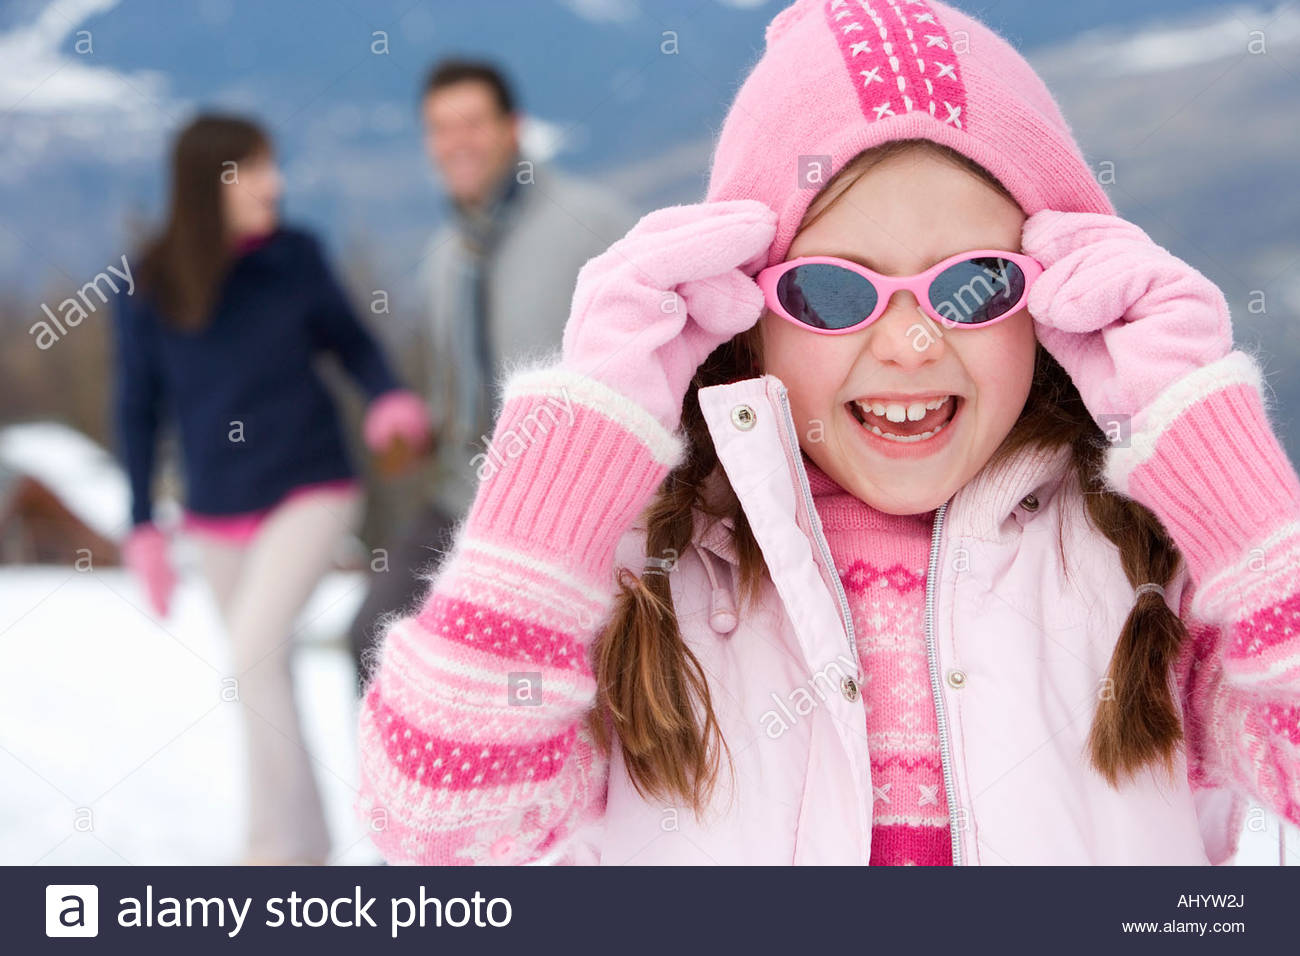 Girl  wearing woolen hat and sunglasses in snow, smiling, portrait, parents in background Stock Photo